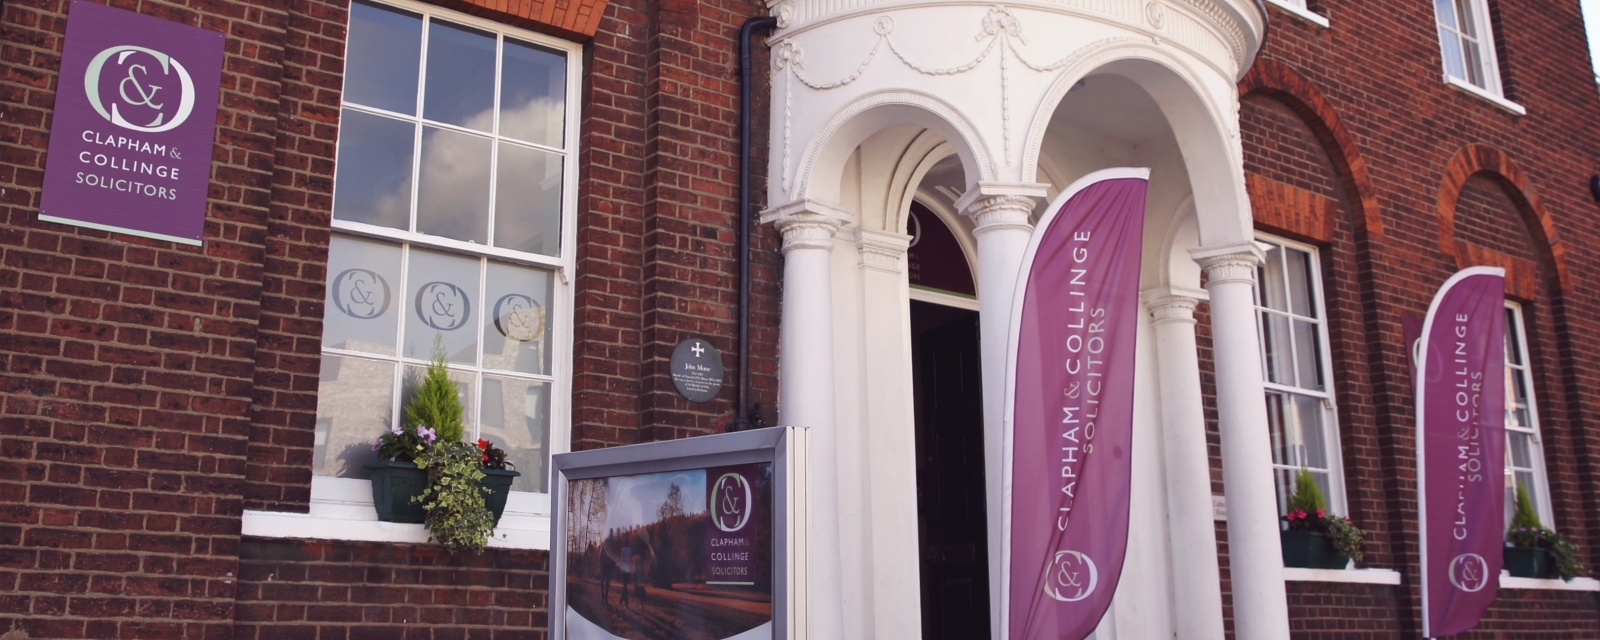 Clapham & Collinge - Independent Solicitors in Norwich, North Walsham and Sheringham.